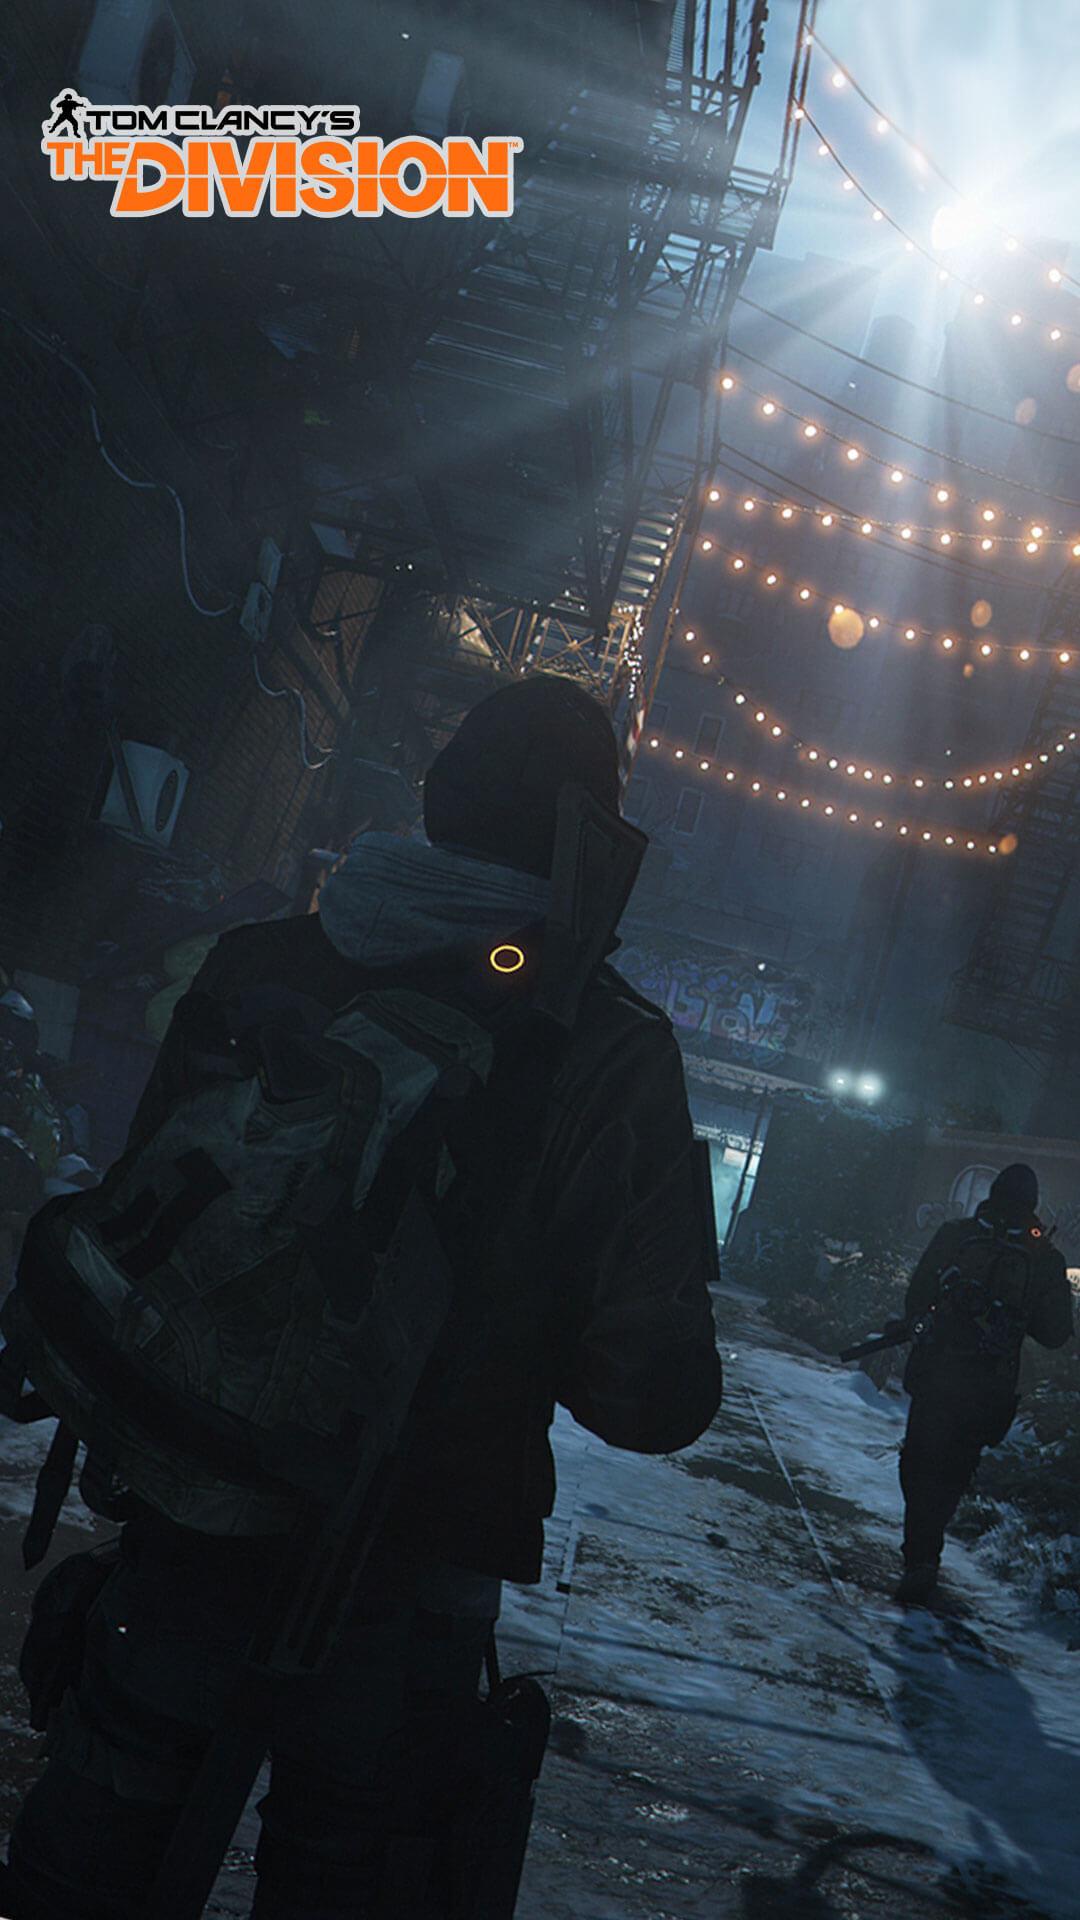 Tom Clancys The Division iPhone 6 Wallpaper HD